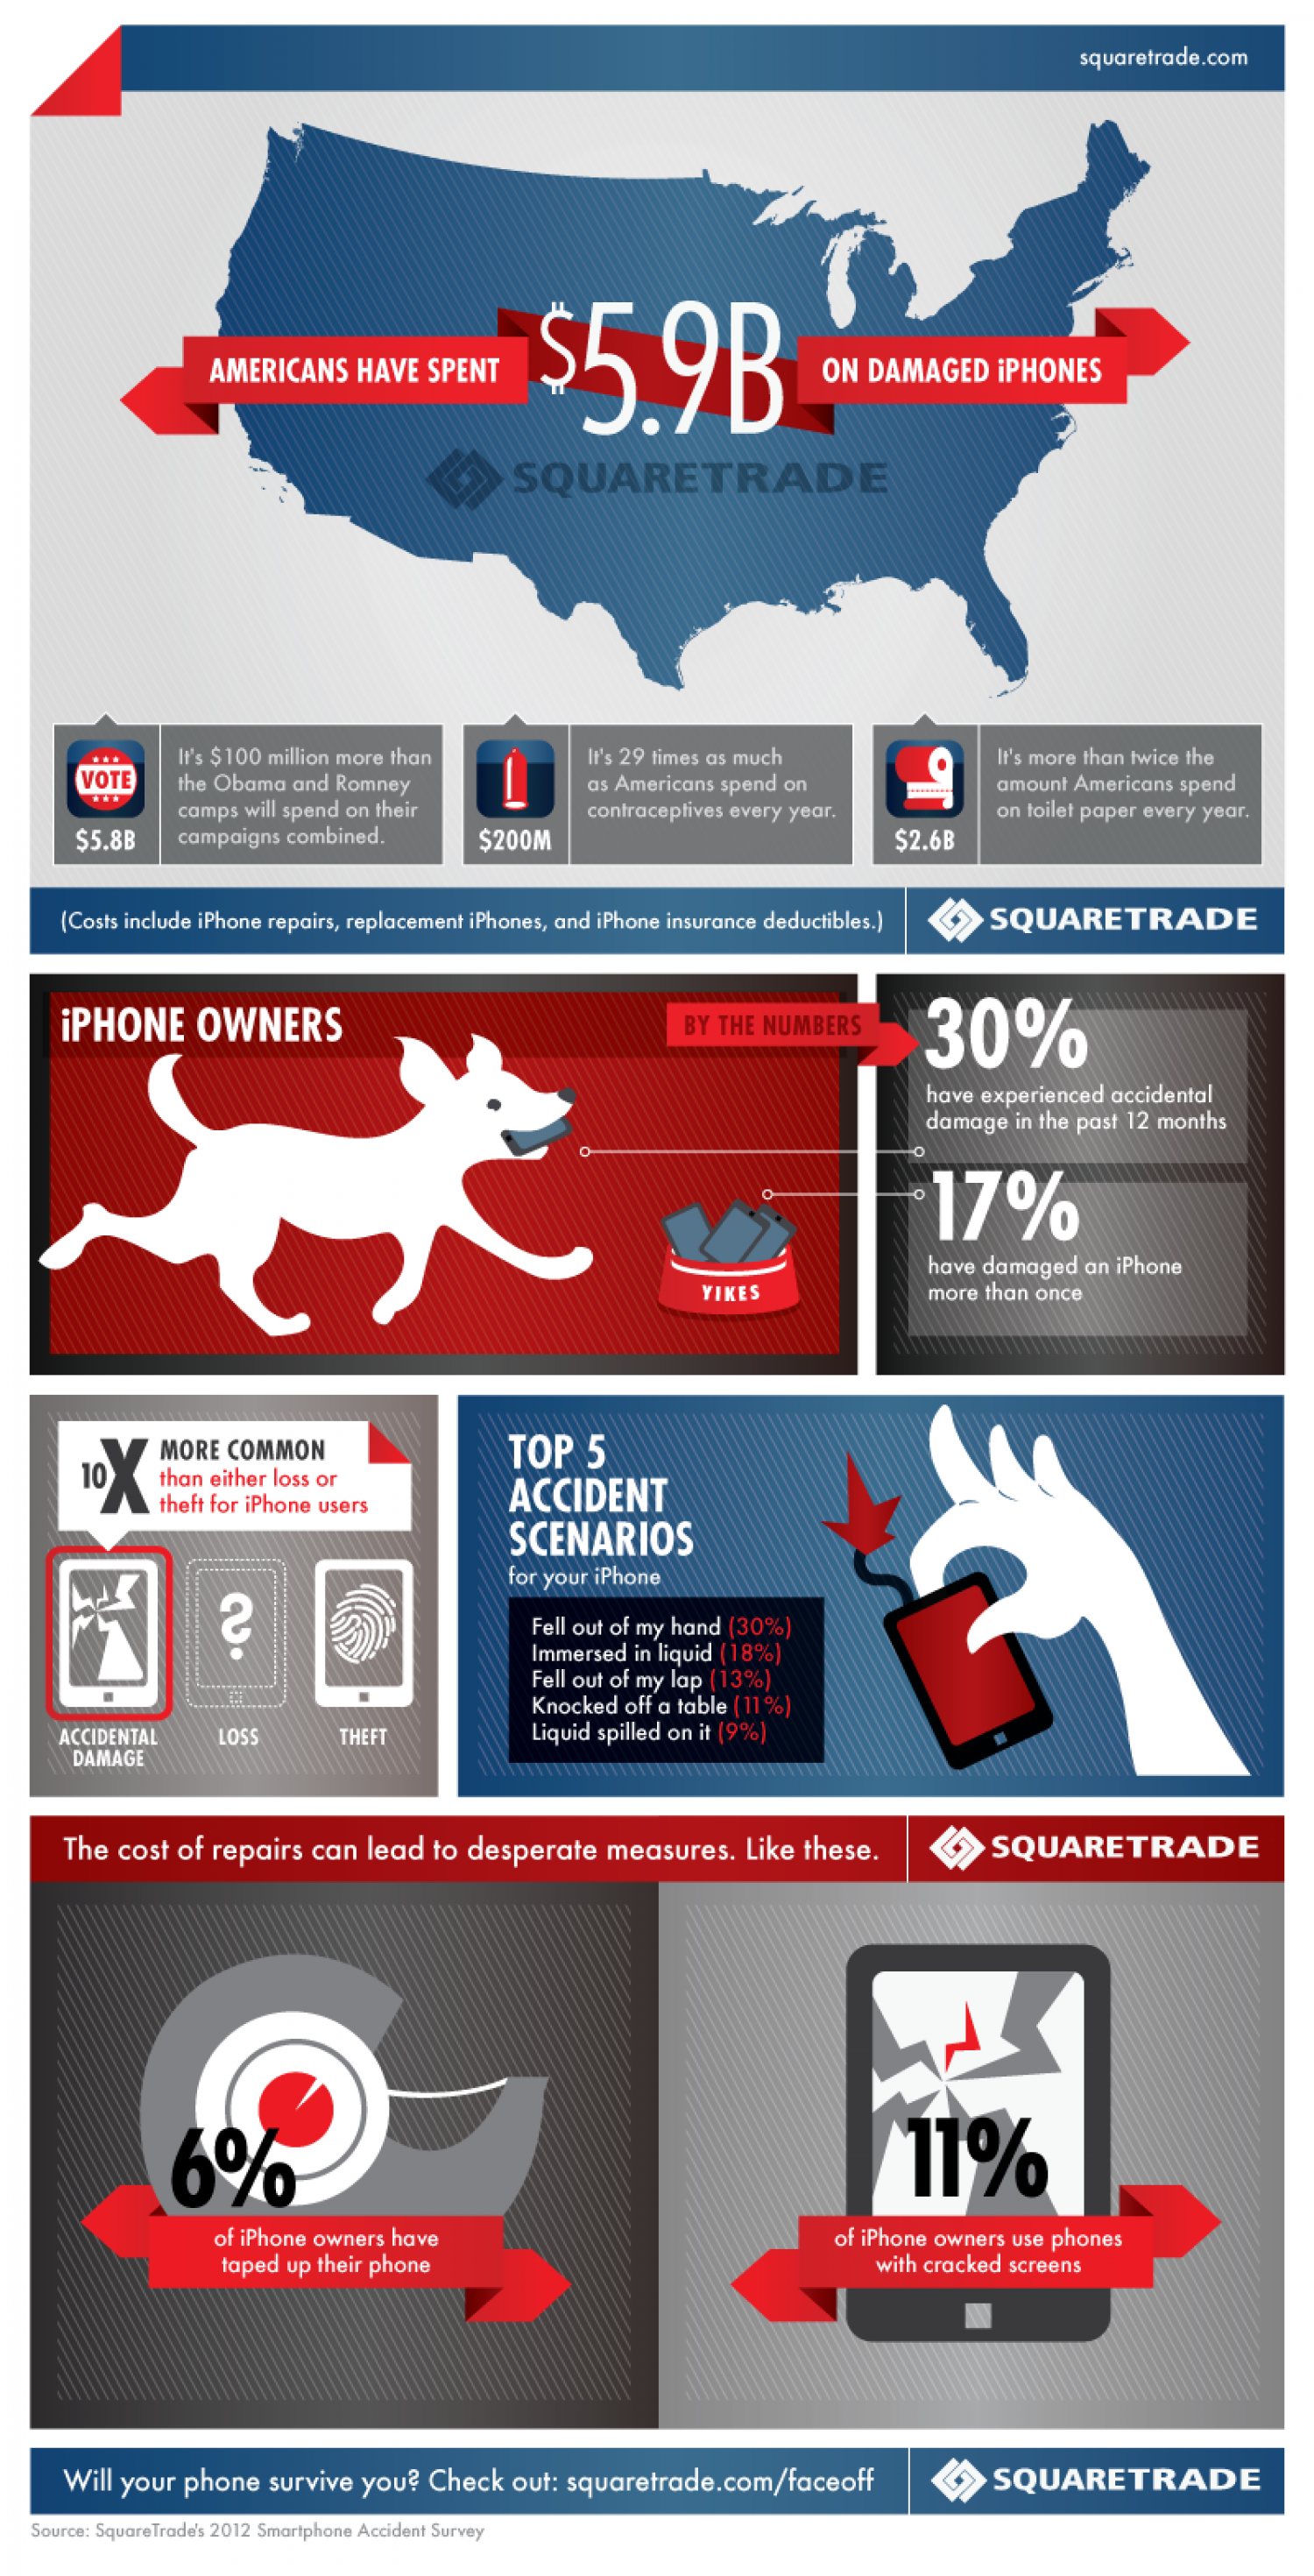 SquareTrade's Damaged iPhones Study Infographic